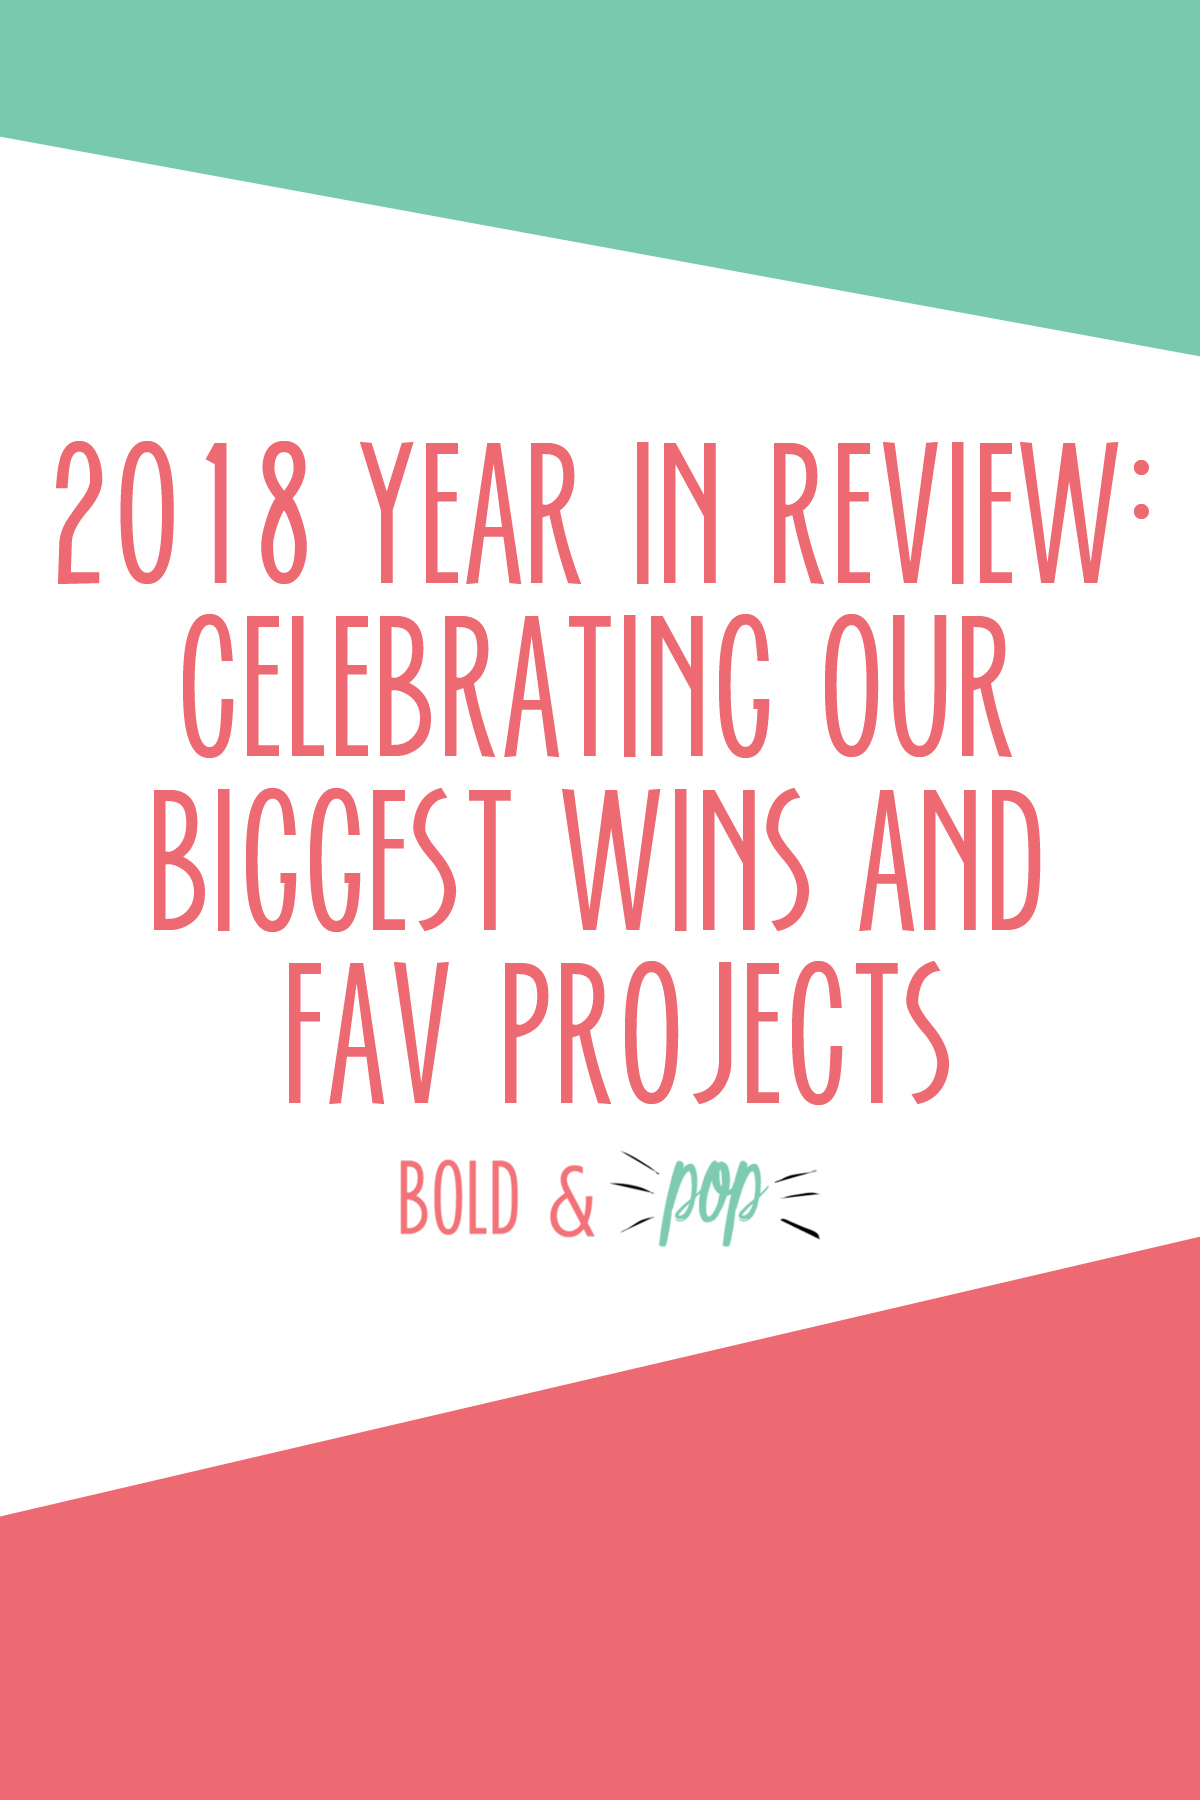 Bold & Pop :: 2018 Year in Review: Celebrating our Biggest Wins and Fav Projects